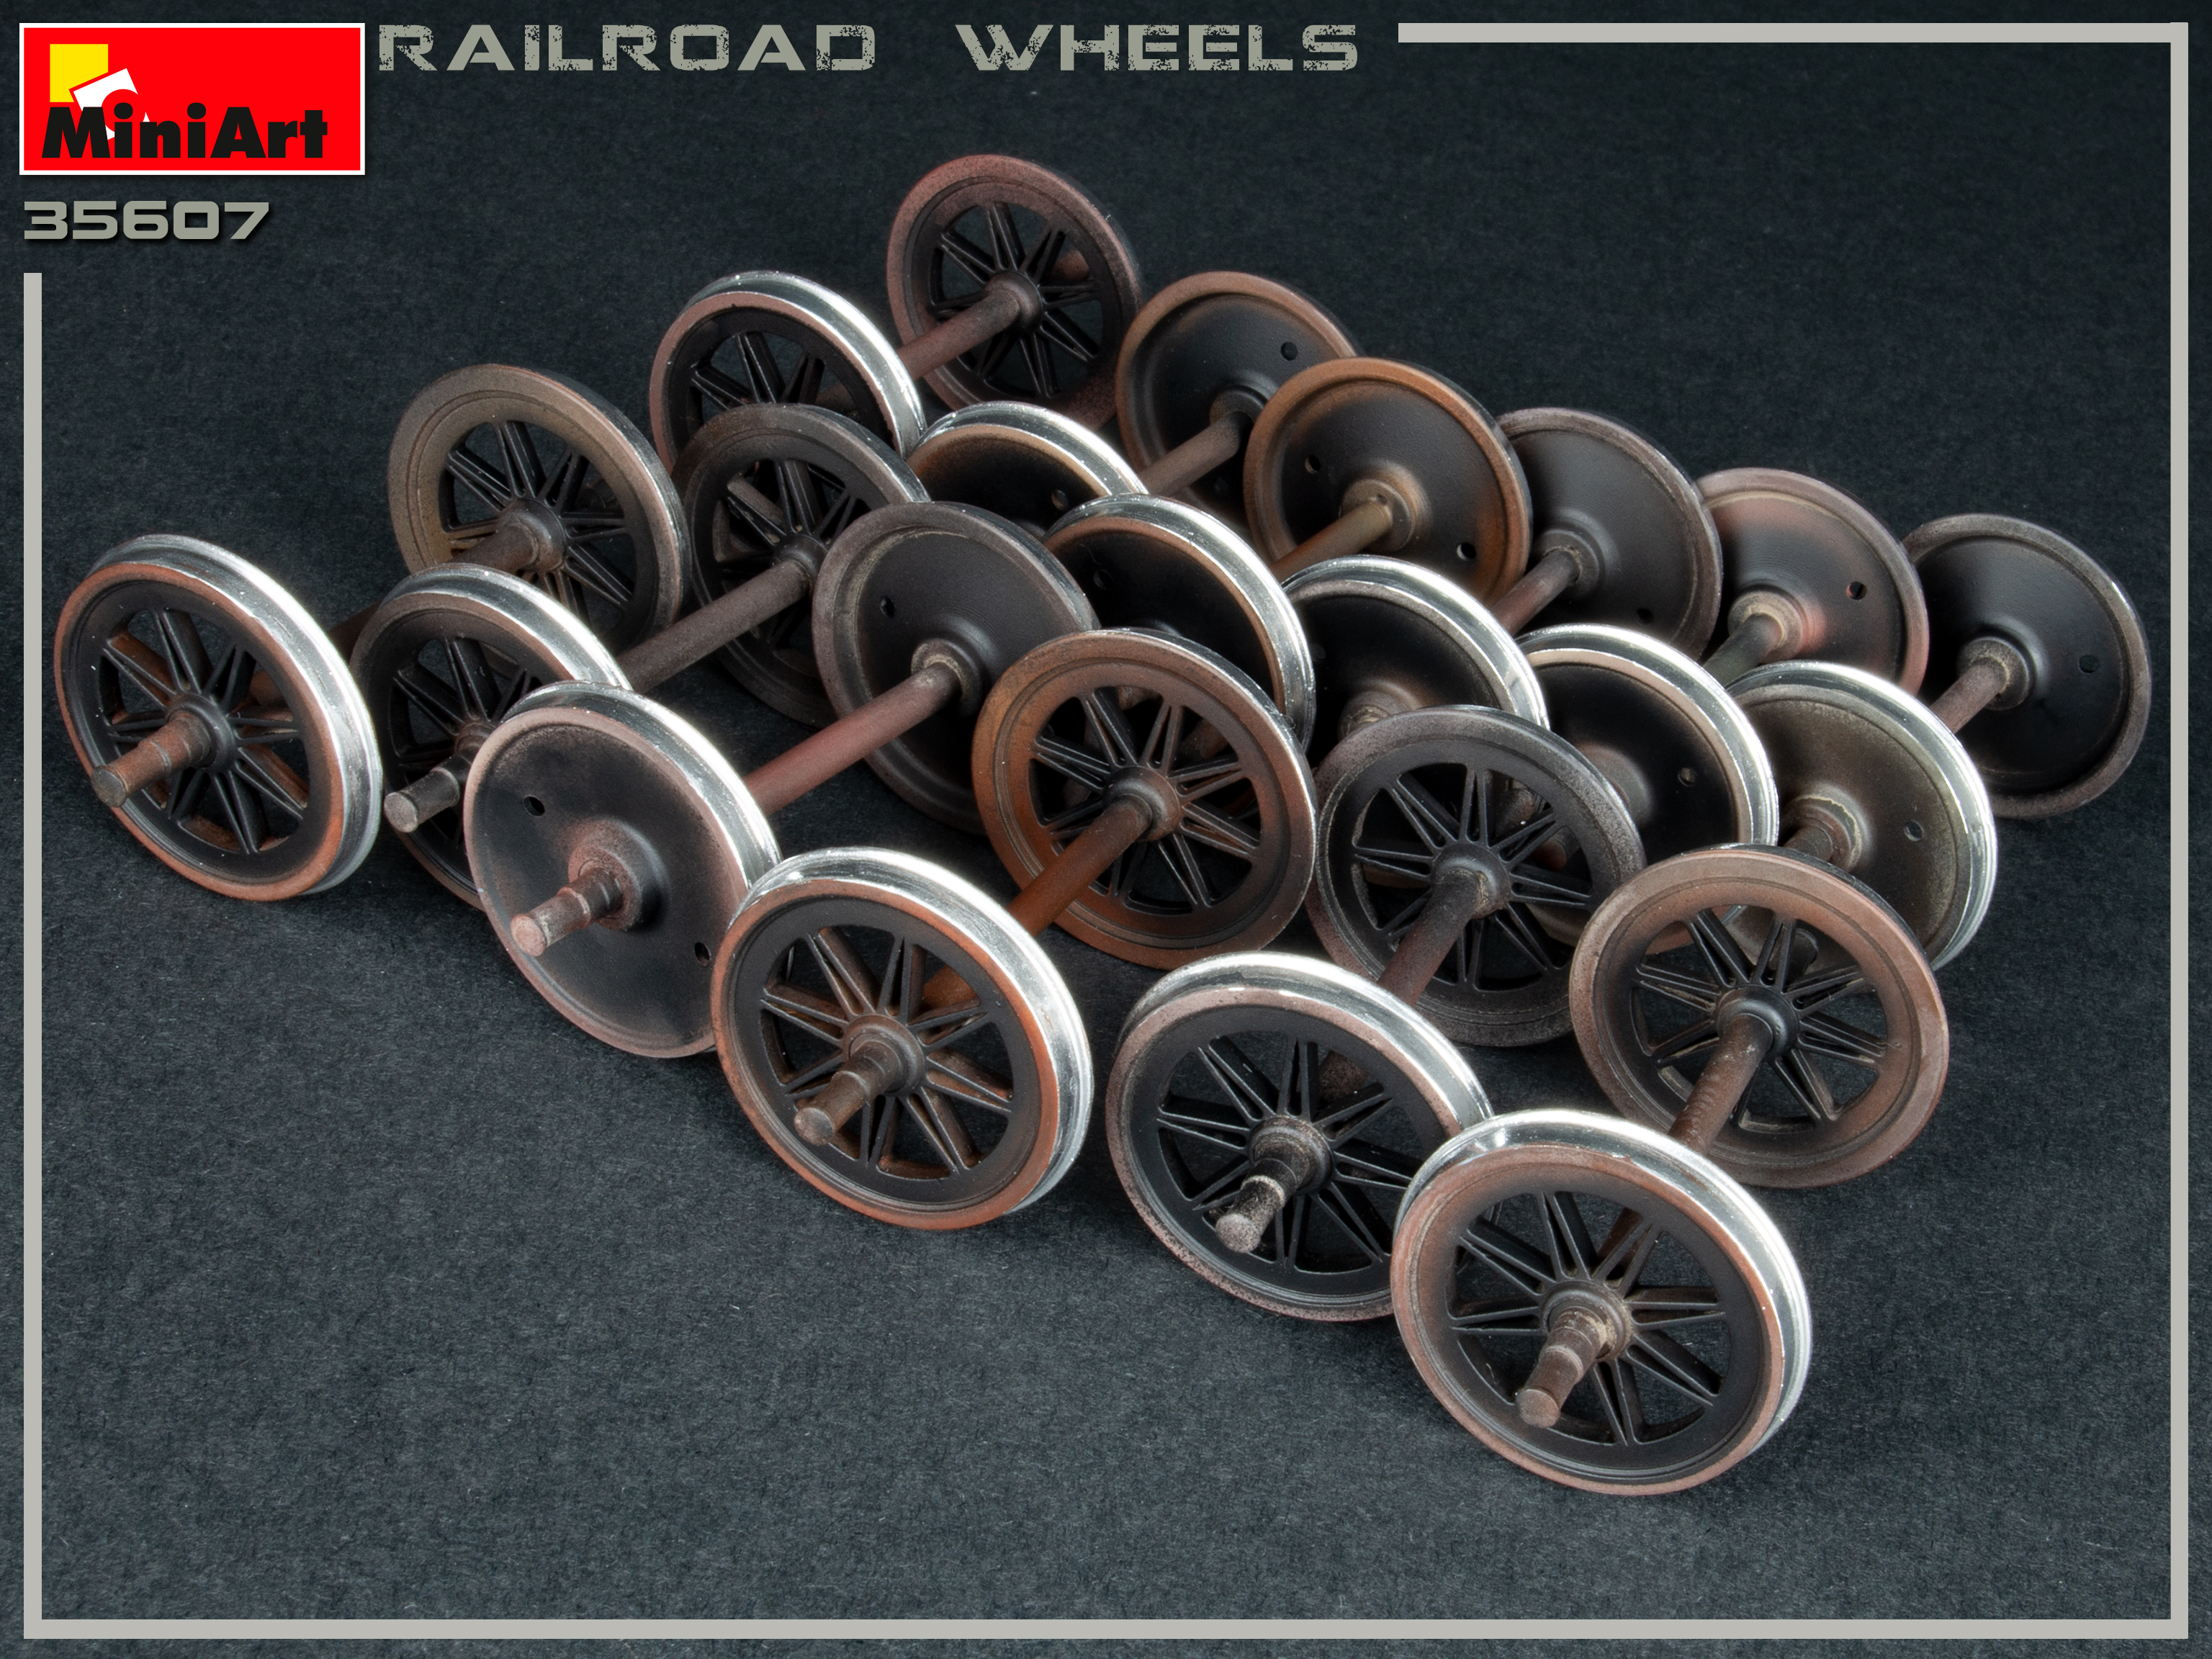 New Photos of 35607 RAILROAD WHEELS